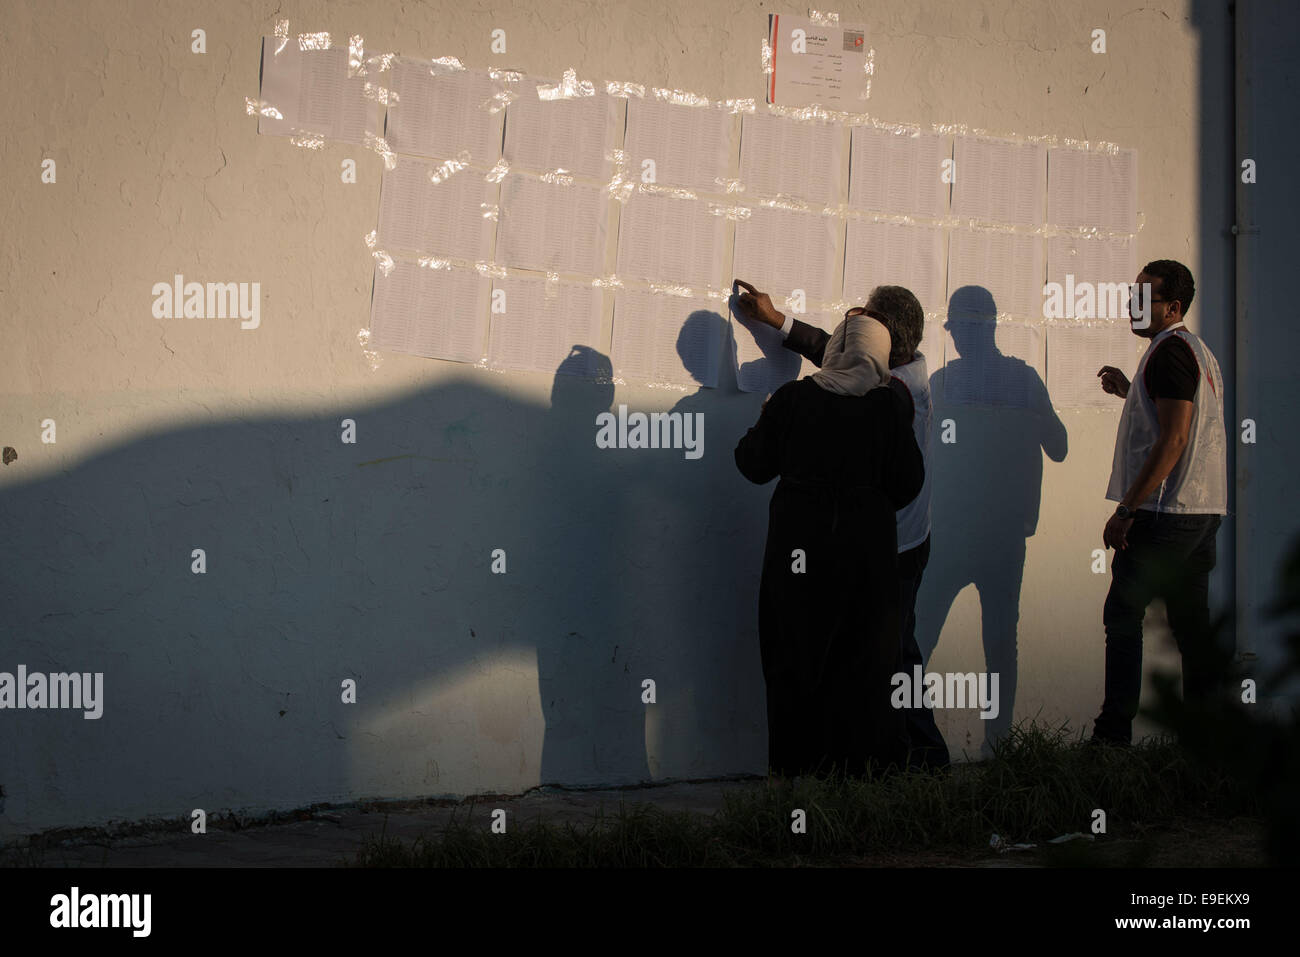 Tunis, Tunisia. 26th Oct, 2014. Electoral workers check information at a polling station in Tunis, capital of Tunisia, - Stock Image